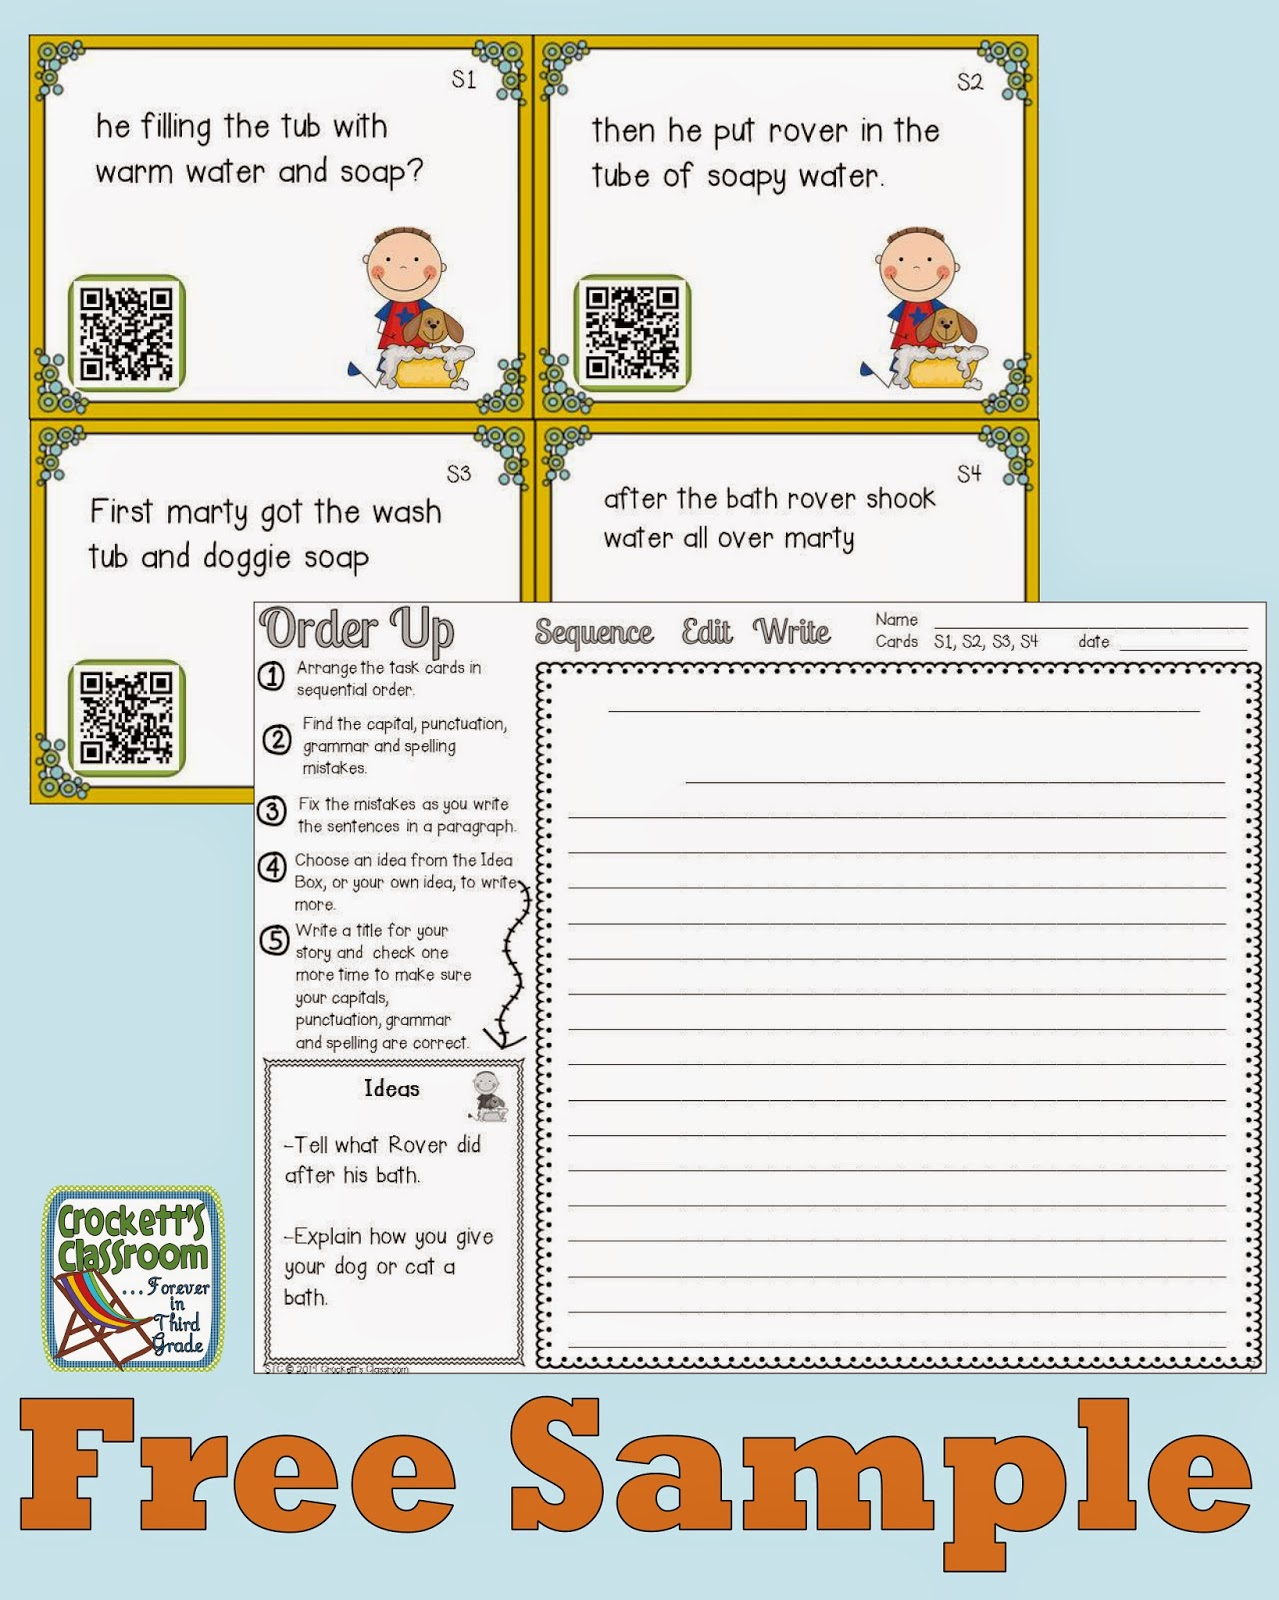 Order Up task cards. Students sequence the cards, edit, and then write them into a paragraph.